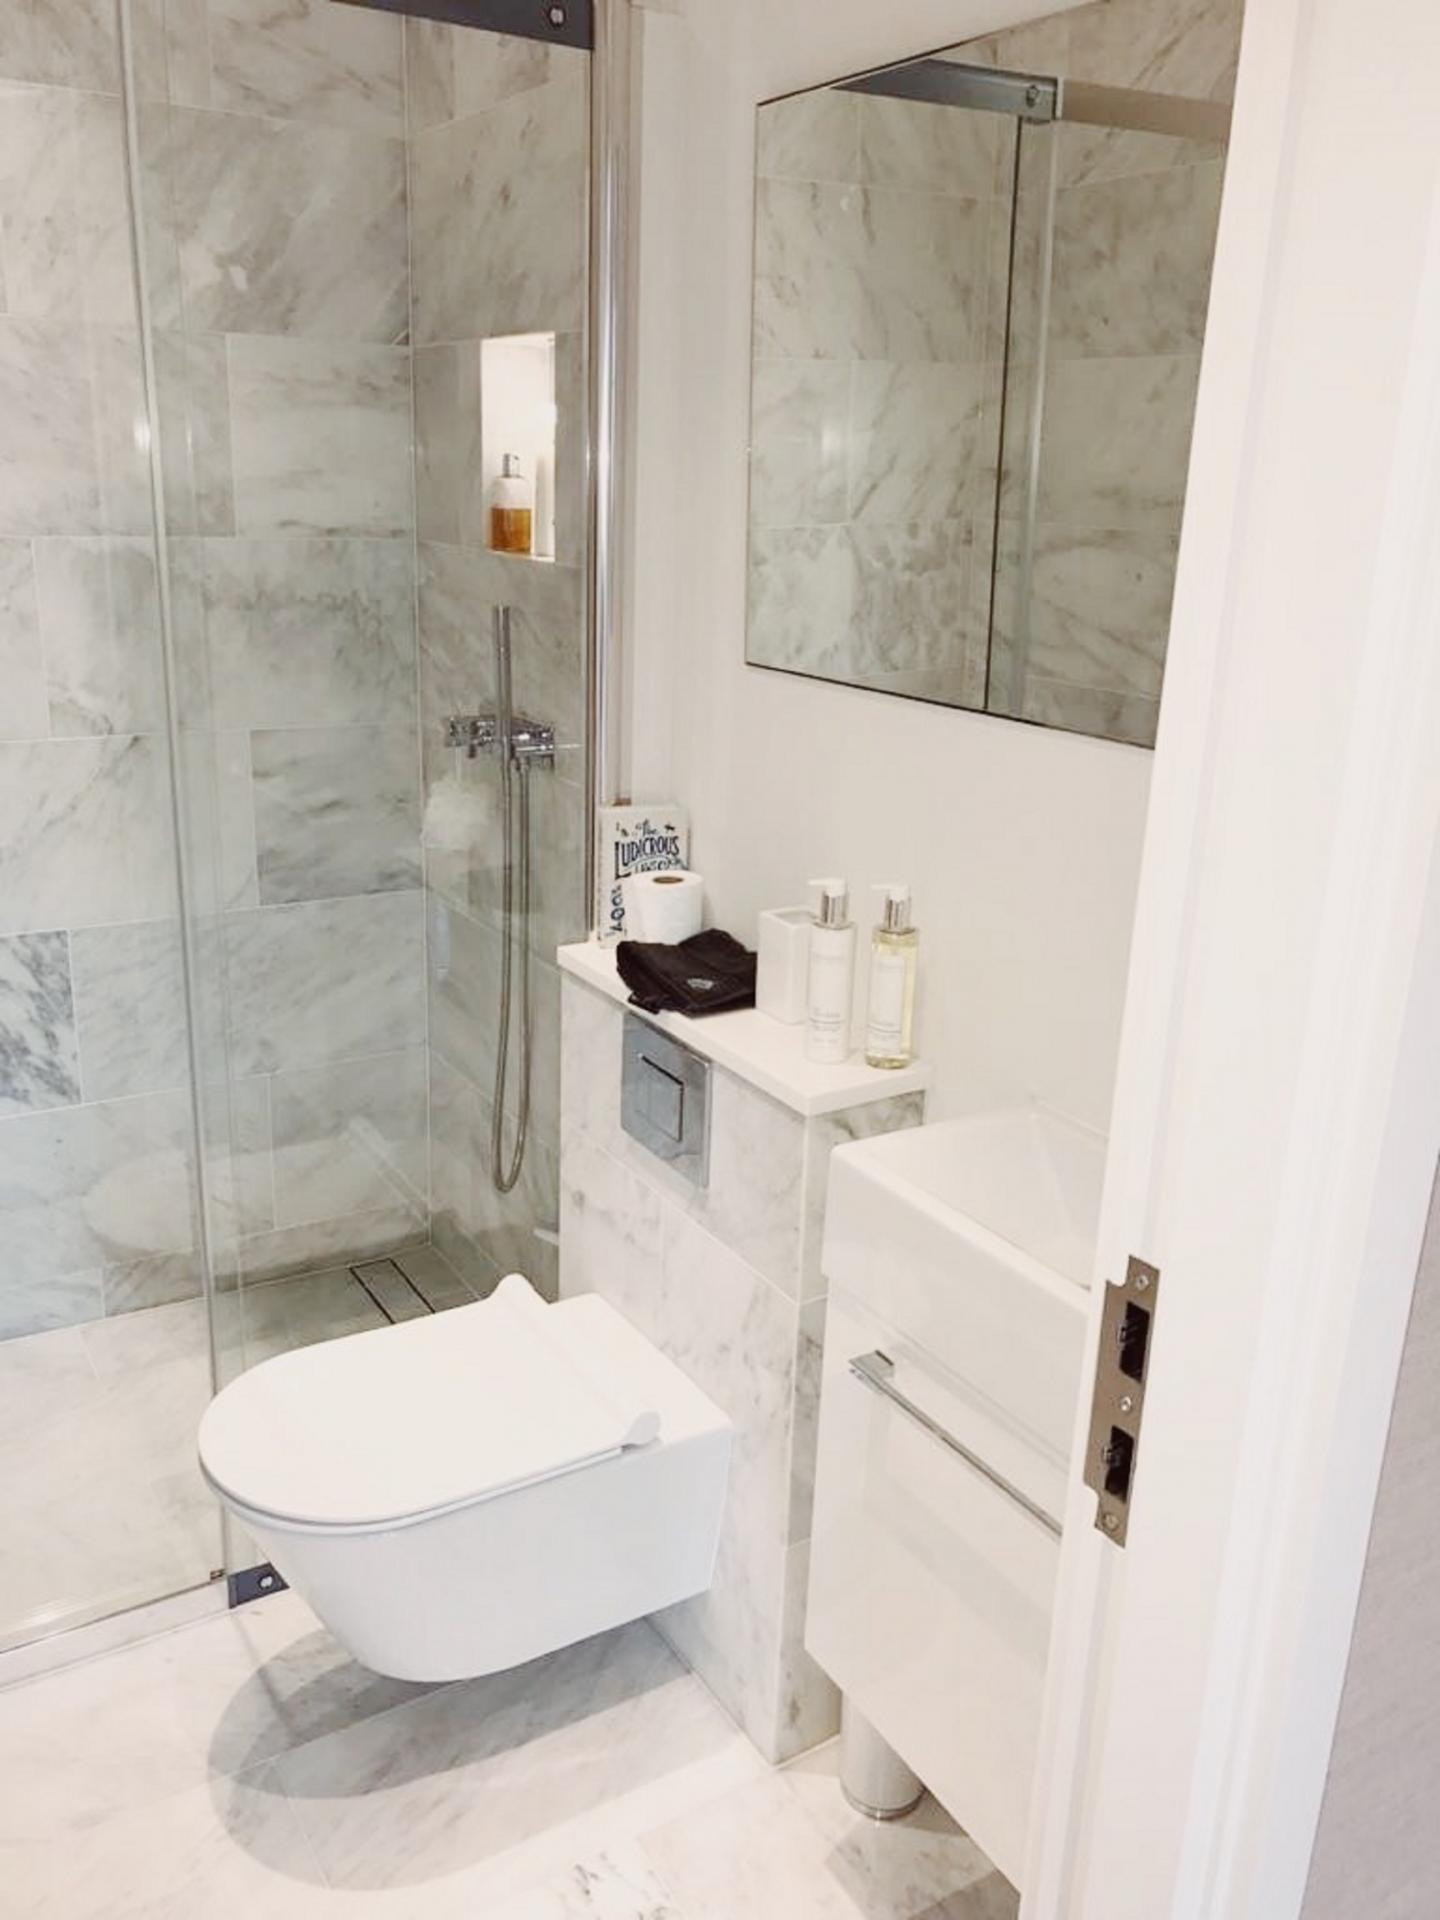 Shower at Old Chelsea Apartment, Chelsea, London